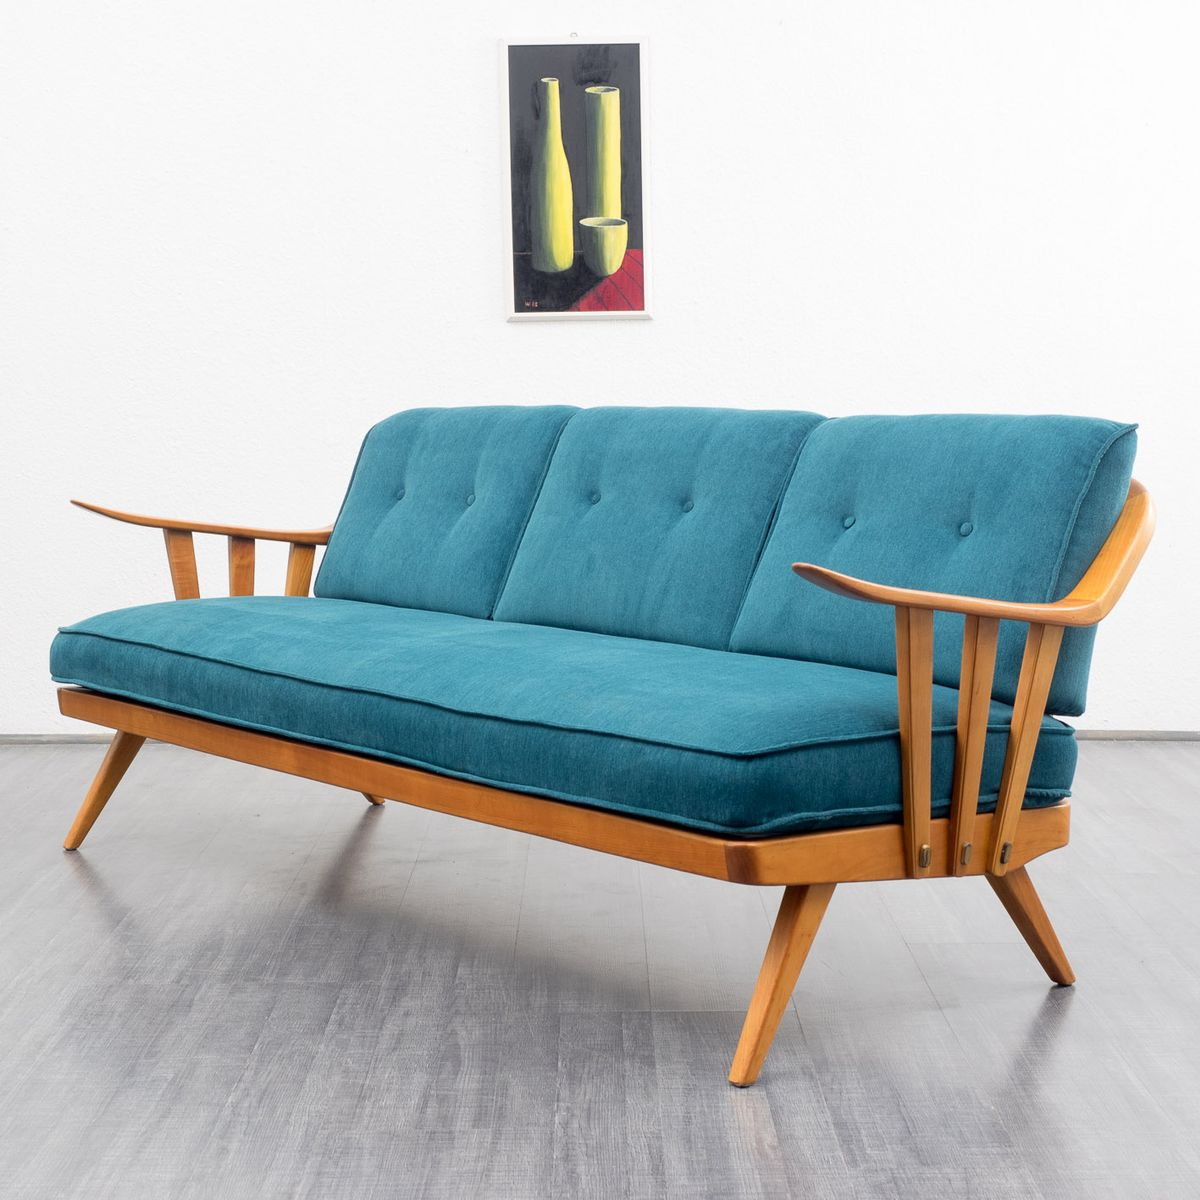 mid century kirschholz sofa von knoll antimott bei pamono kaufen. Black Bedroom Furniture Sets. Home Design Ideas